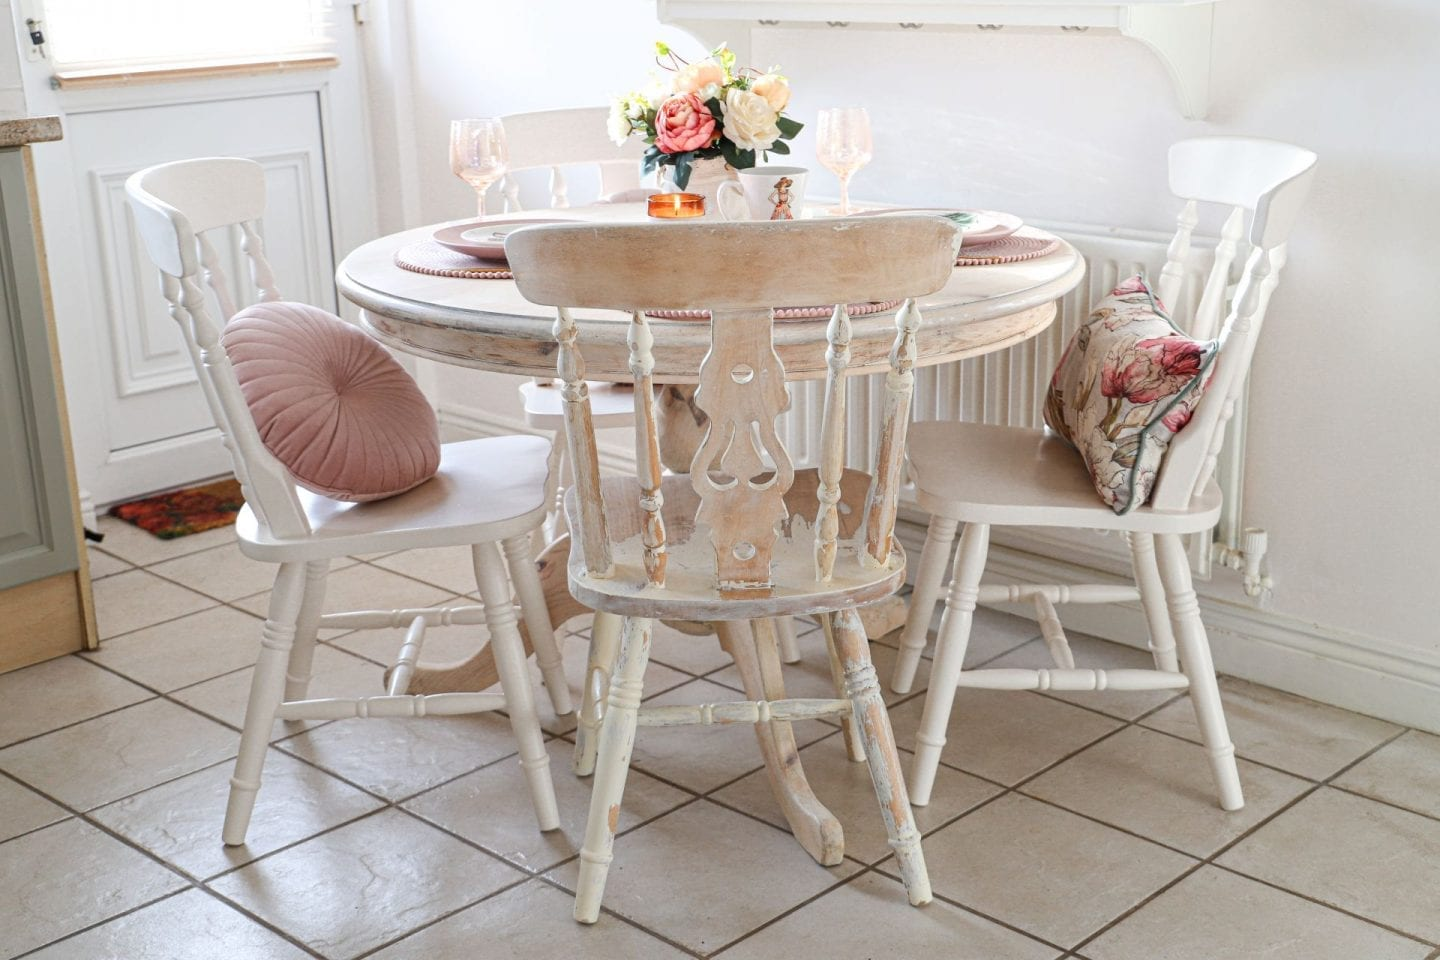 Upcycled dining room chair